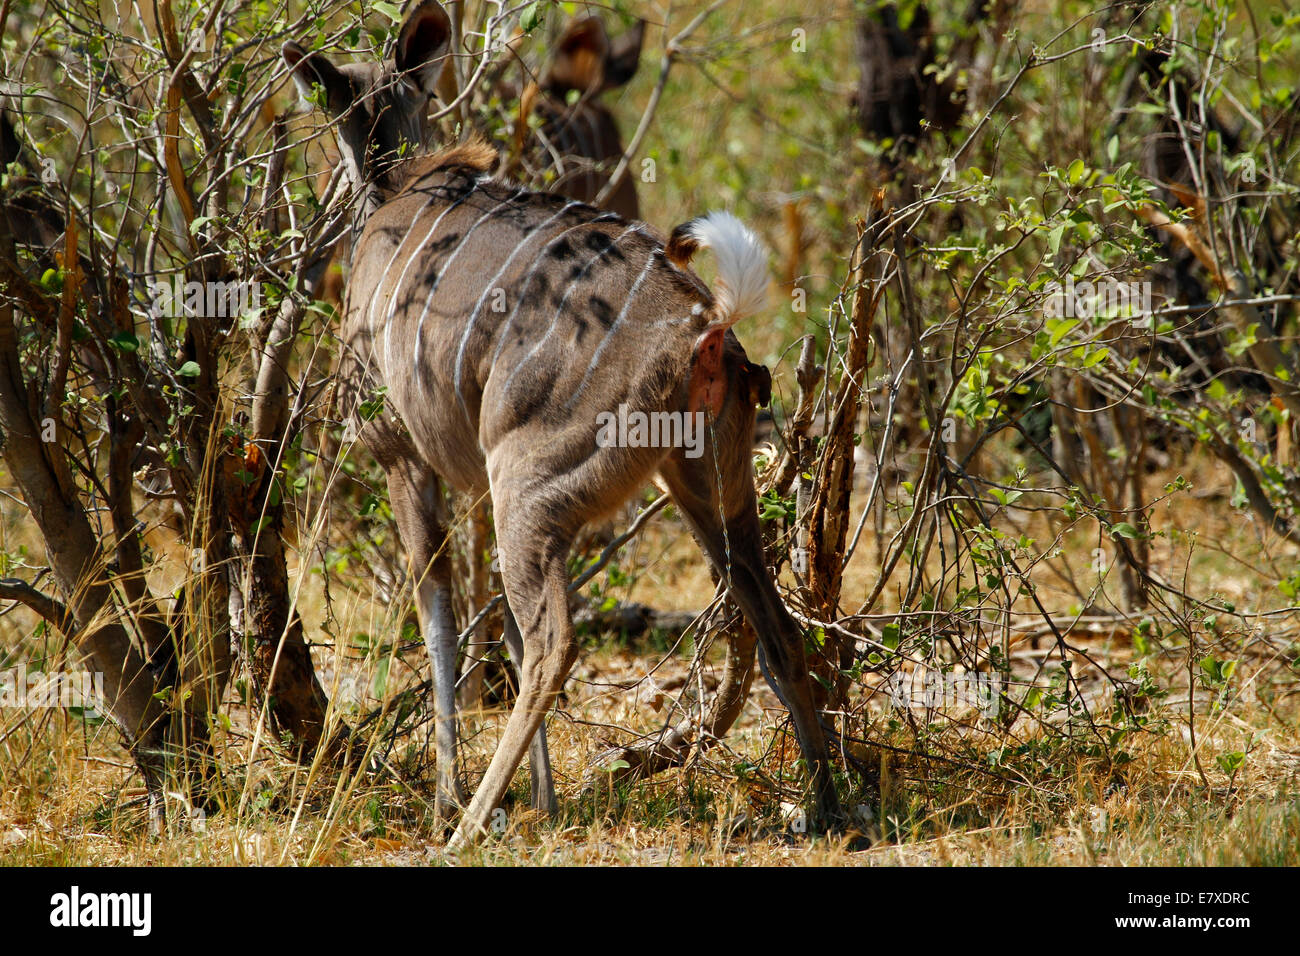 African Wild Greater Kudu Antelope having a pee in the bush veld